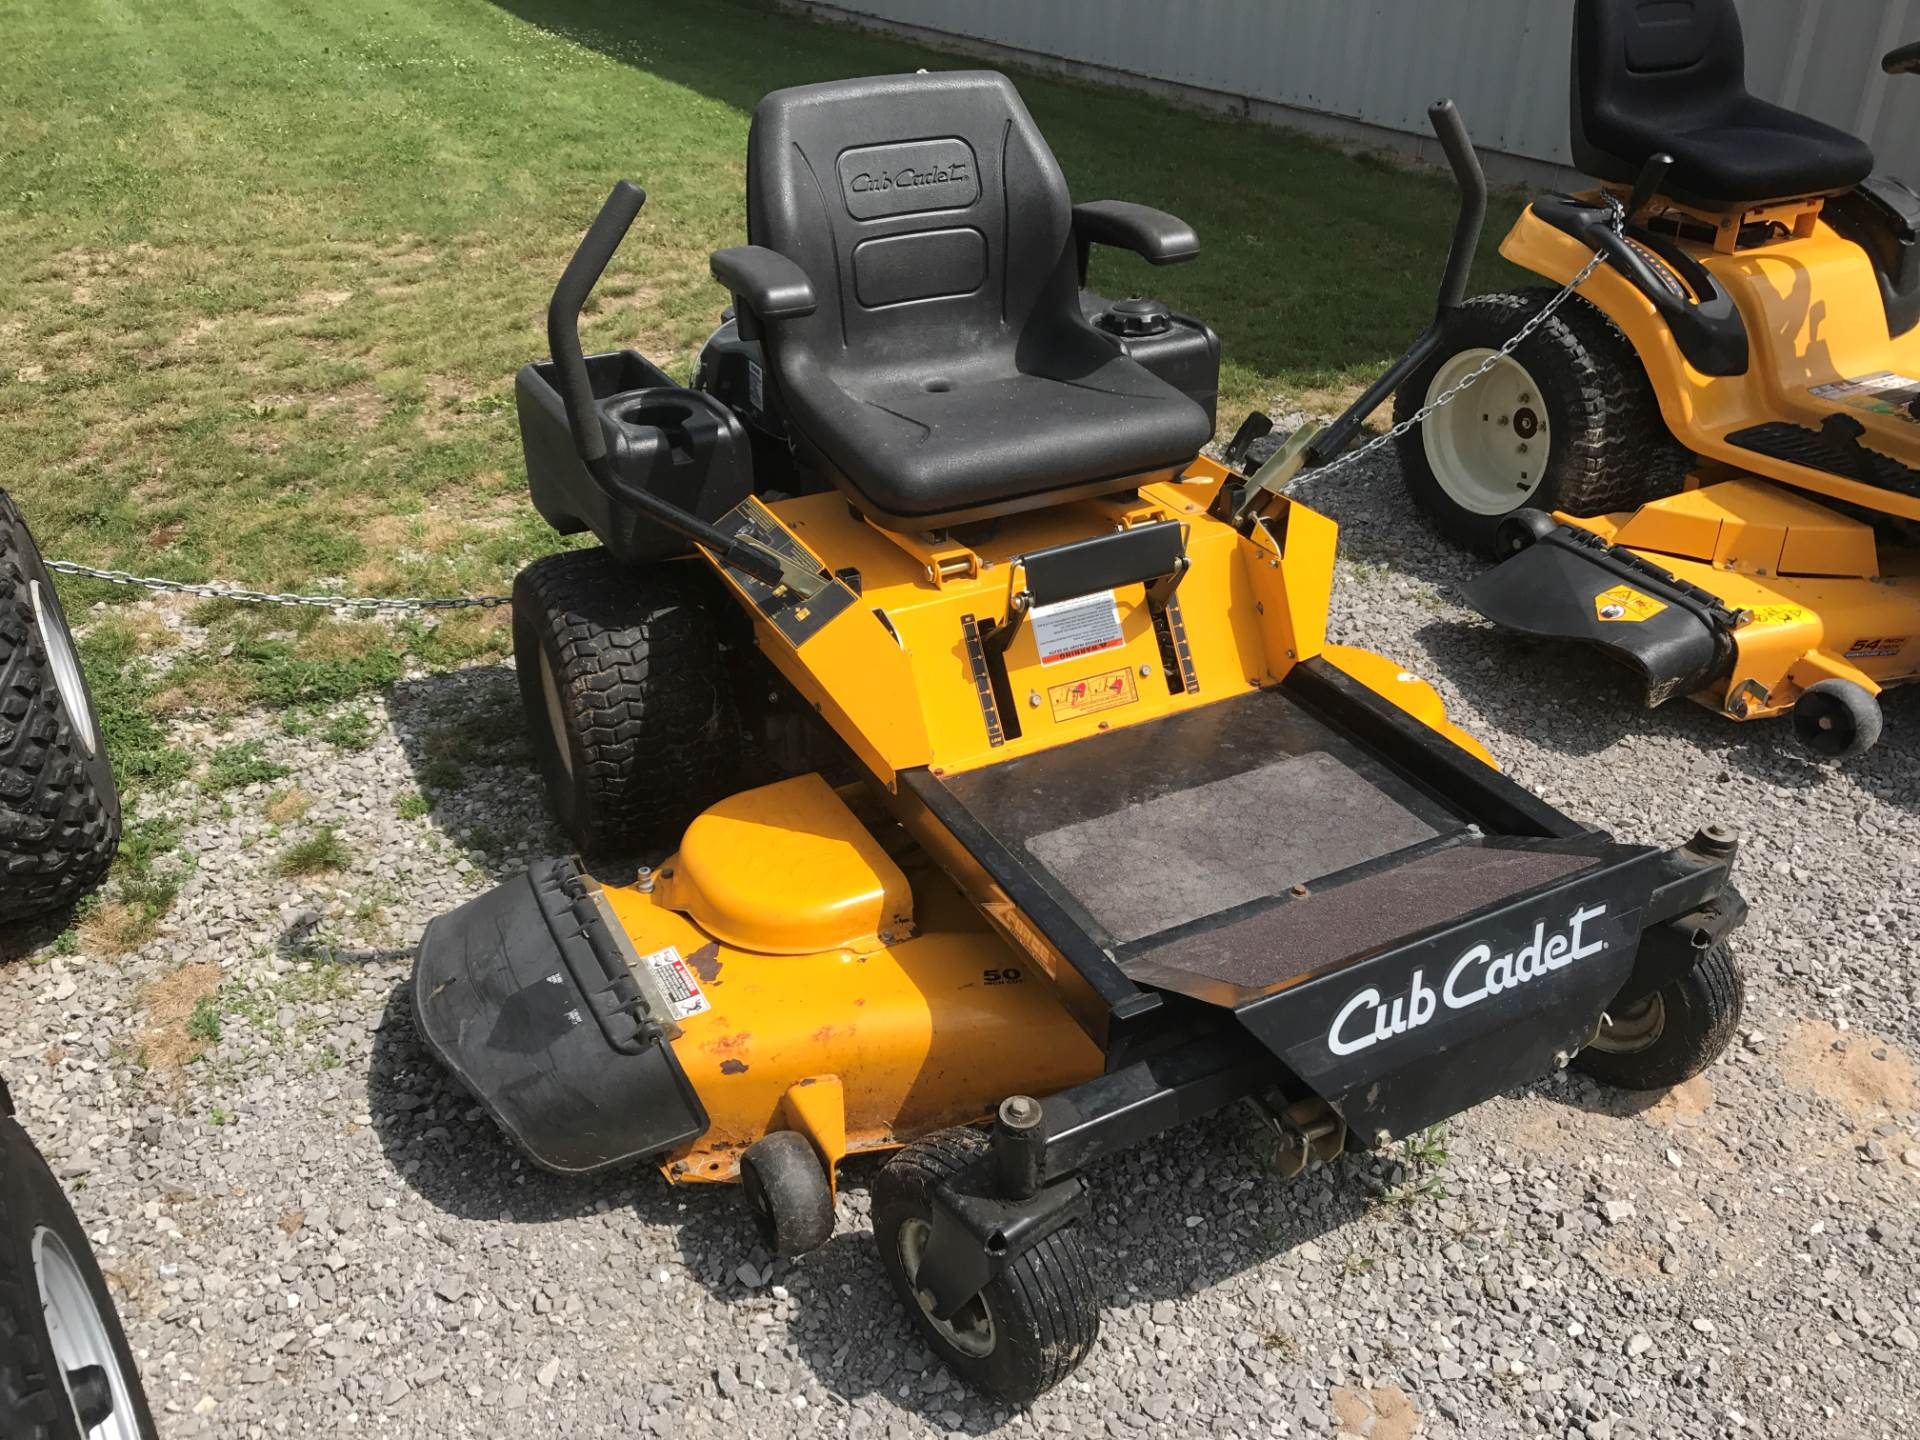 used 2006 cub cadet z force 50 lawn mowers in hillman mi stock number c1234. Black Bedroom Furniture Sets. Home Design Ideas